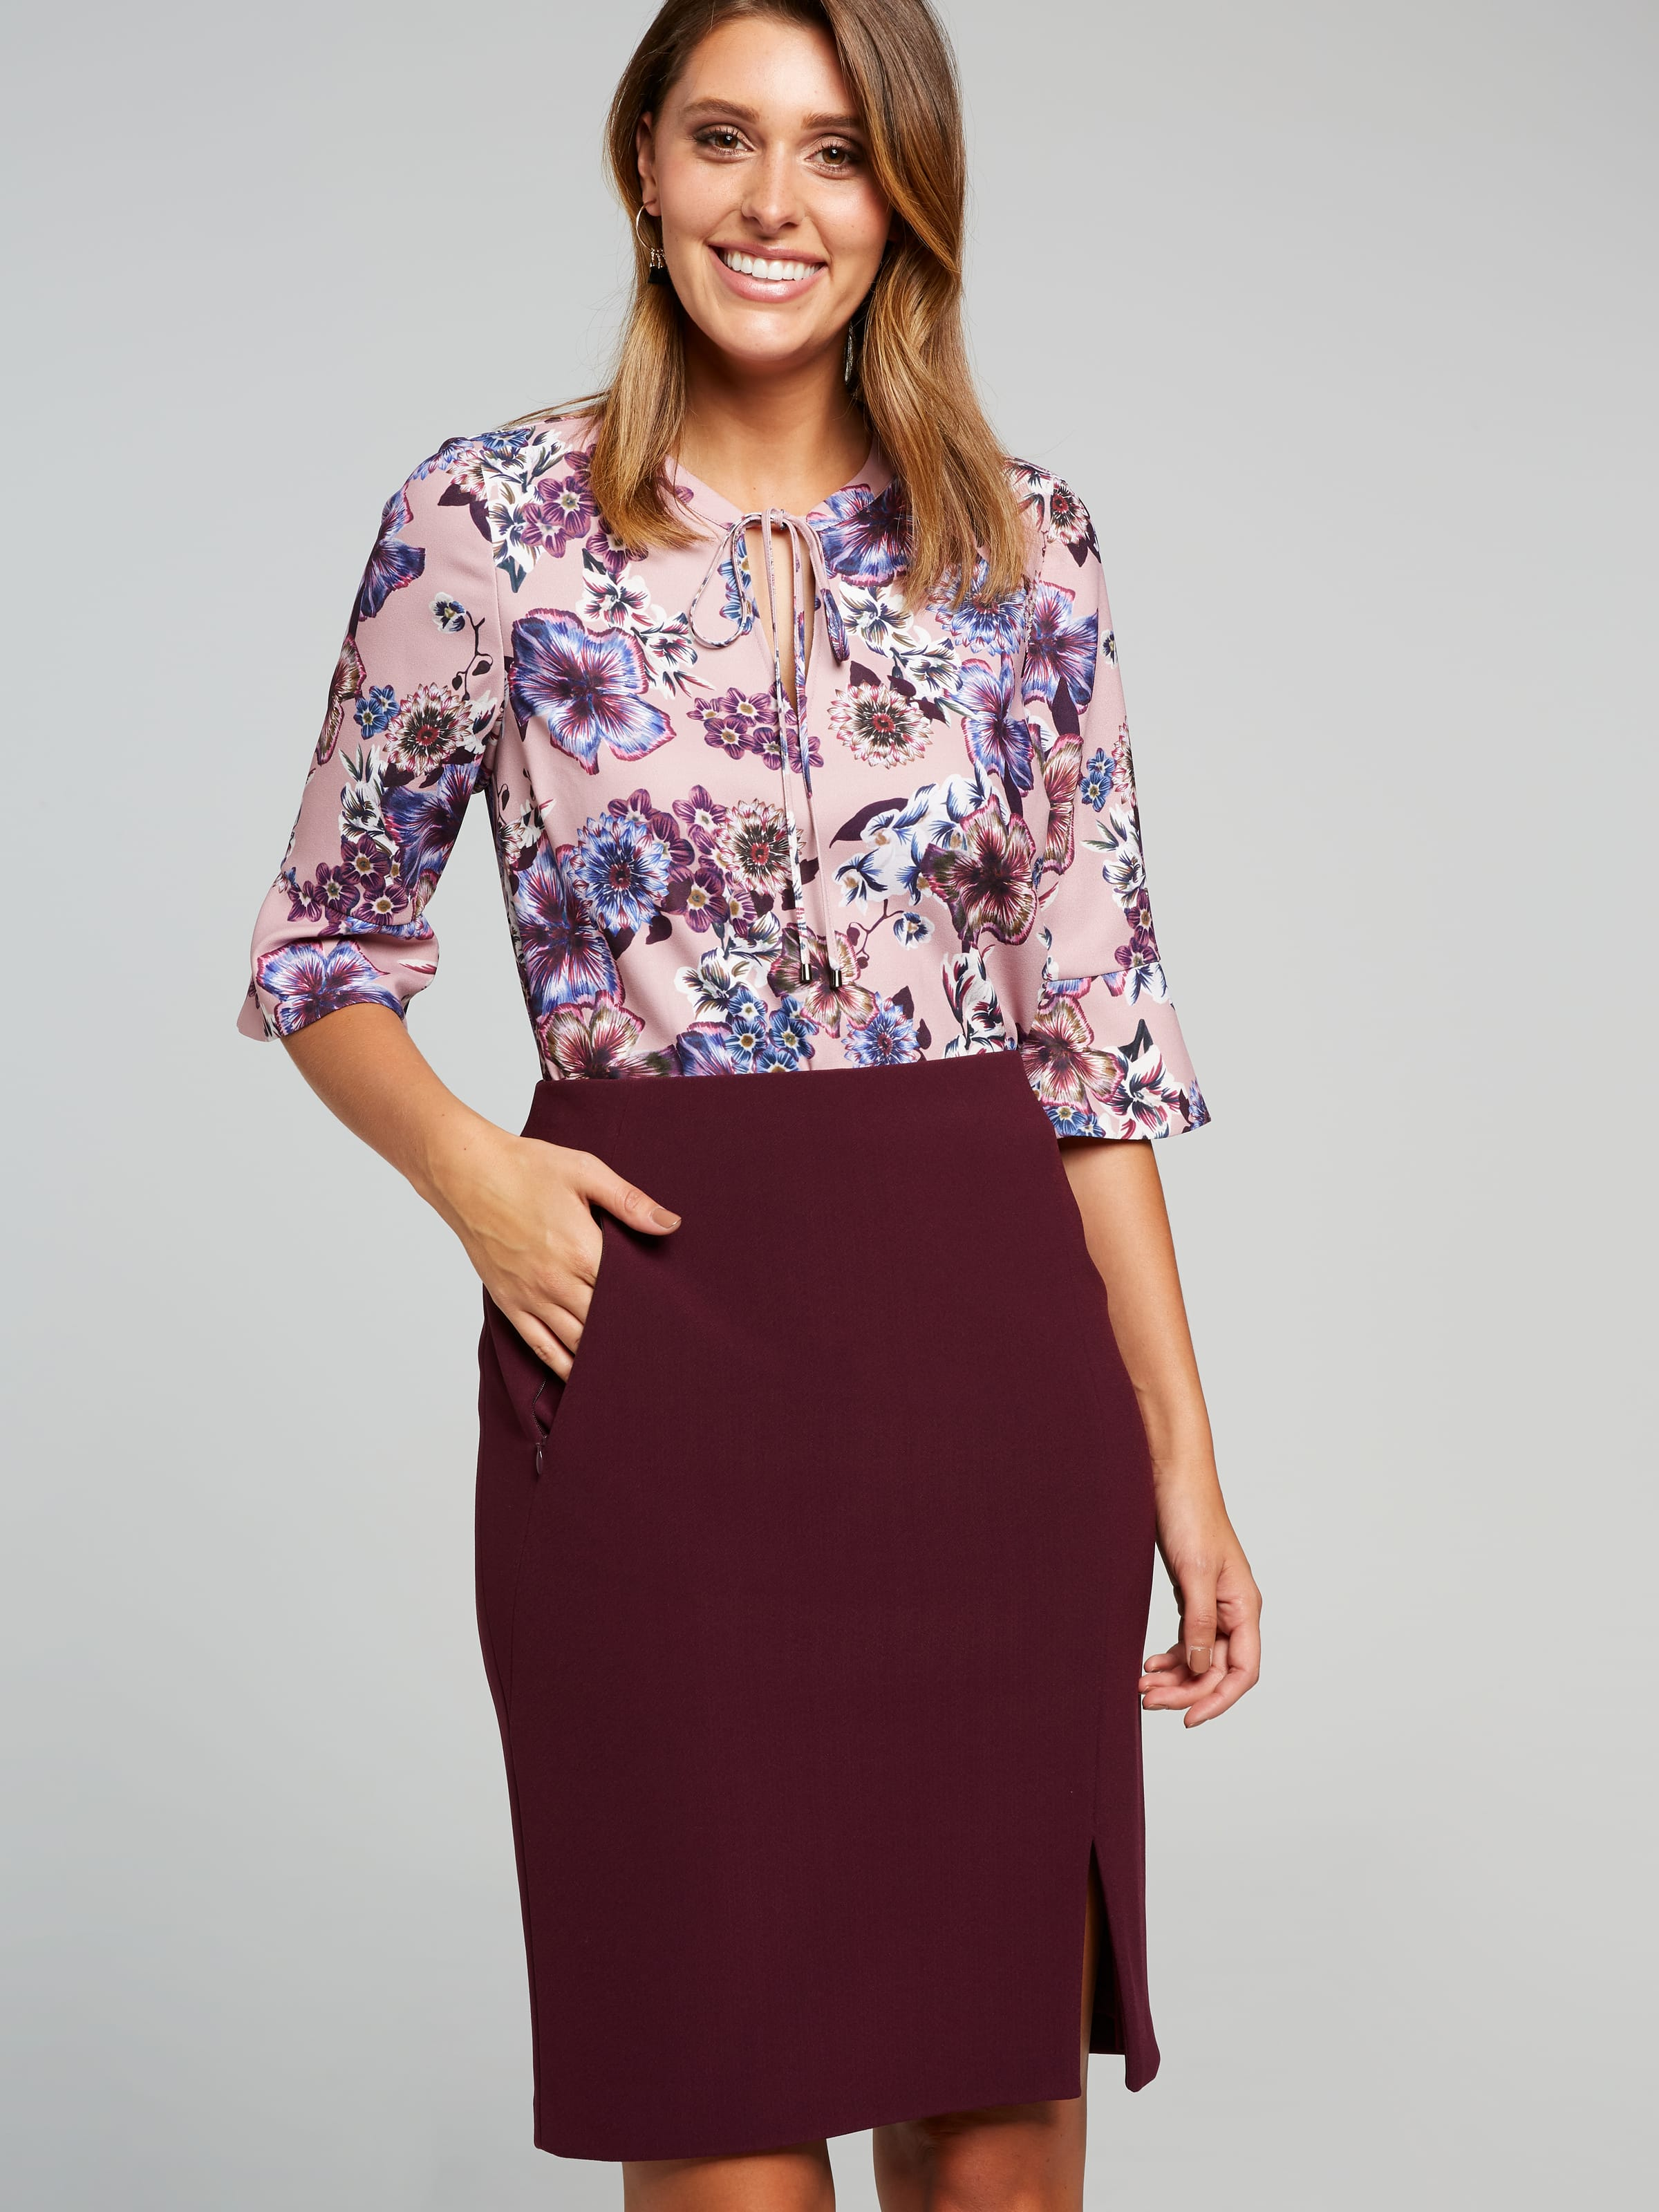 This Rosie Stretch Pencil Skirt Is Made In A Polyester/Elastane Blend Stretch Fabrication For The Ultimate Fit And Comfort. Finishing At The Knee In Length, This Is Your Perfect Work Skirt. Team It Together With A White Blouse And A Pair Of Black Heels.(Plum, 12)